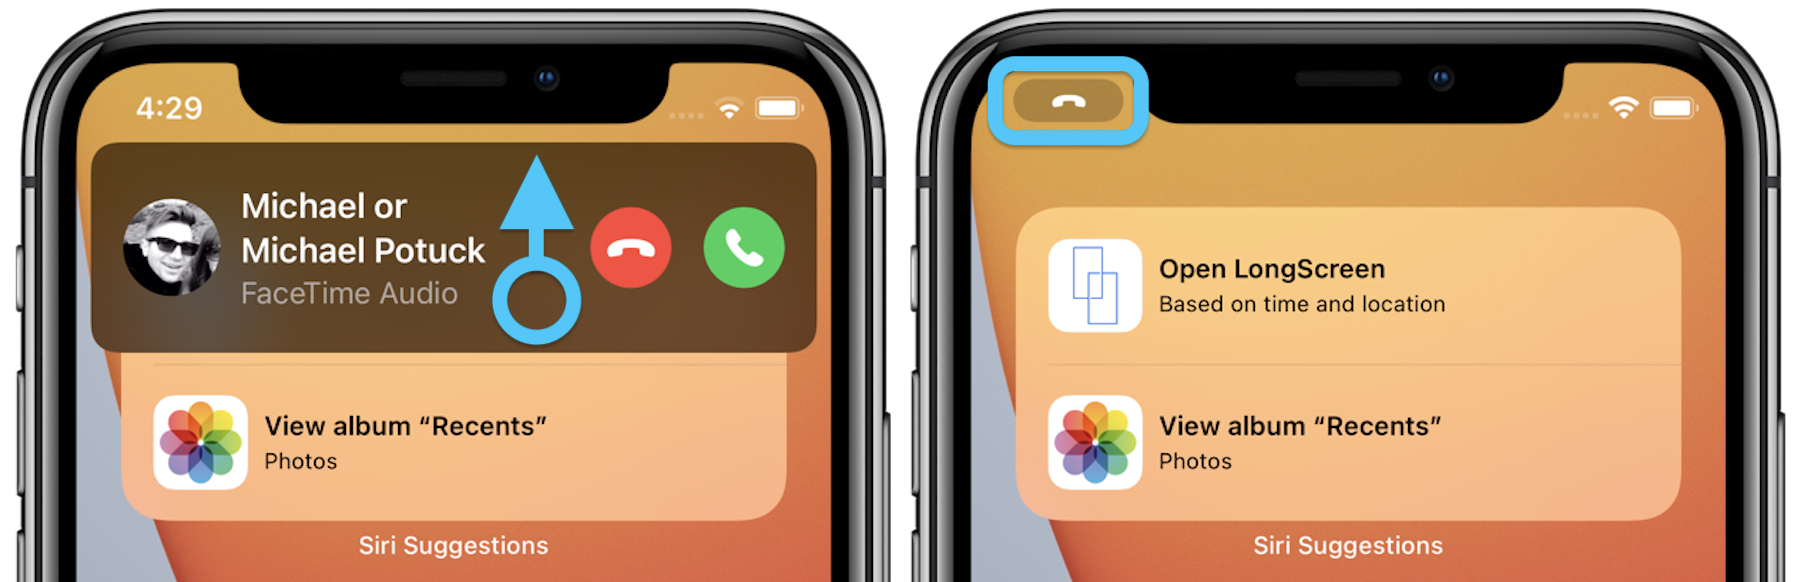 How to Use the Compact Calling Interface for iPhone iOS 14 Walkthrough 3